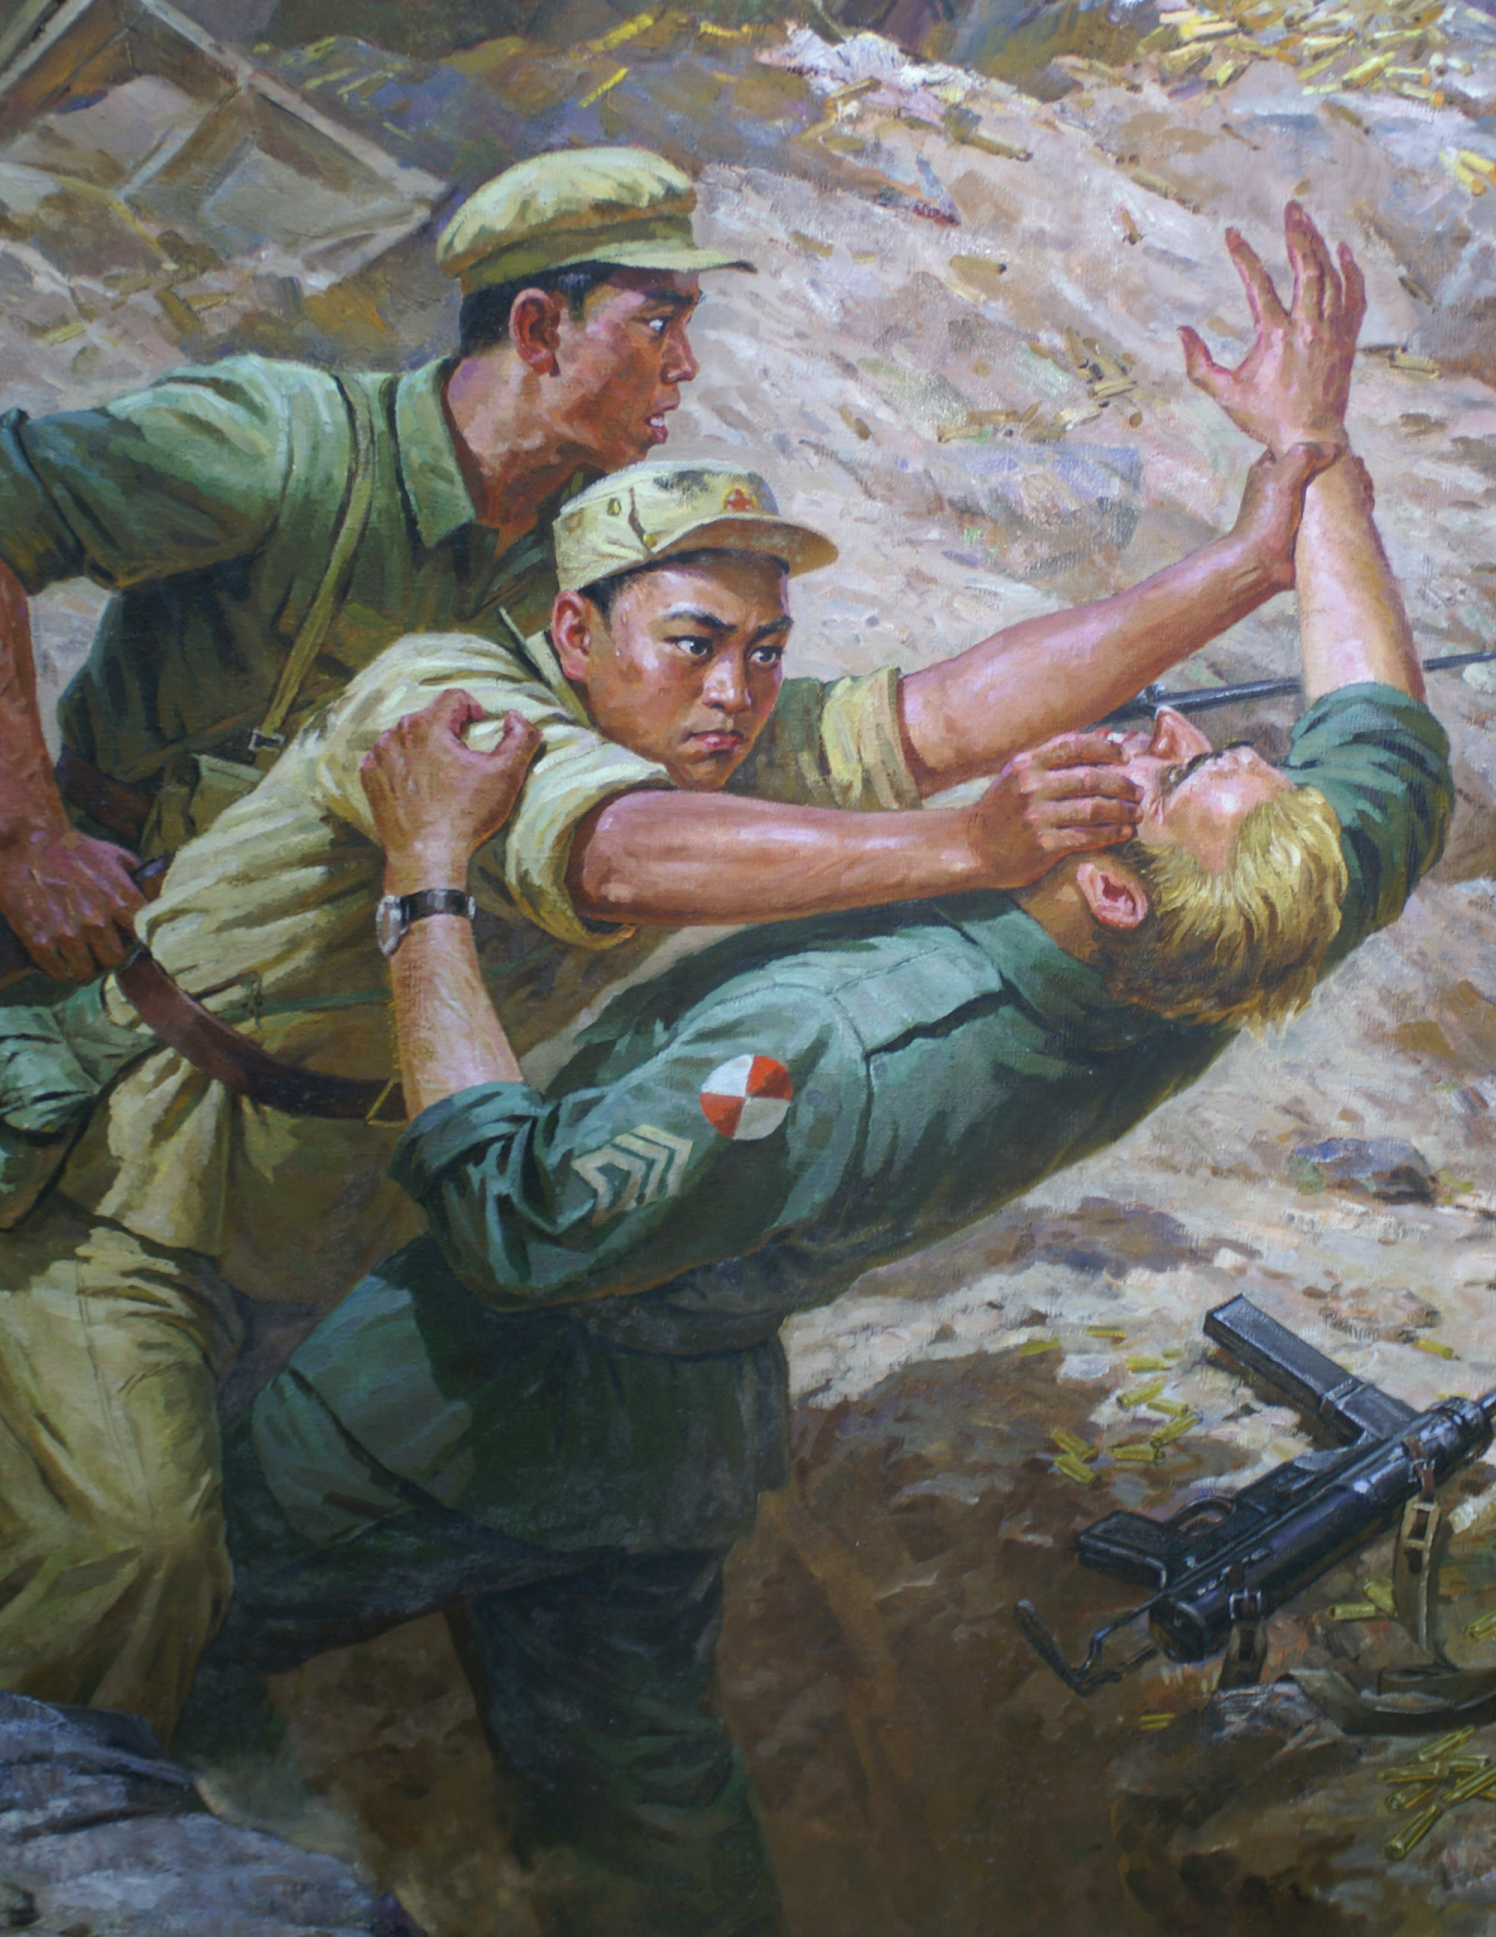 Chinese volunteer fighting a GI with his bare hands